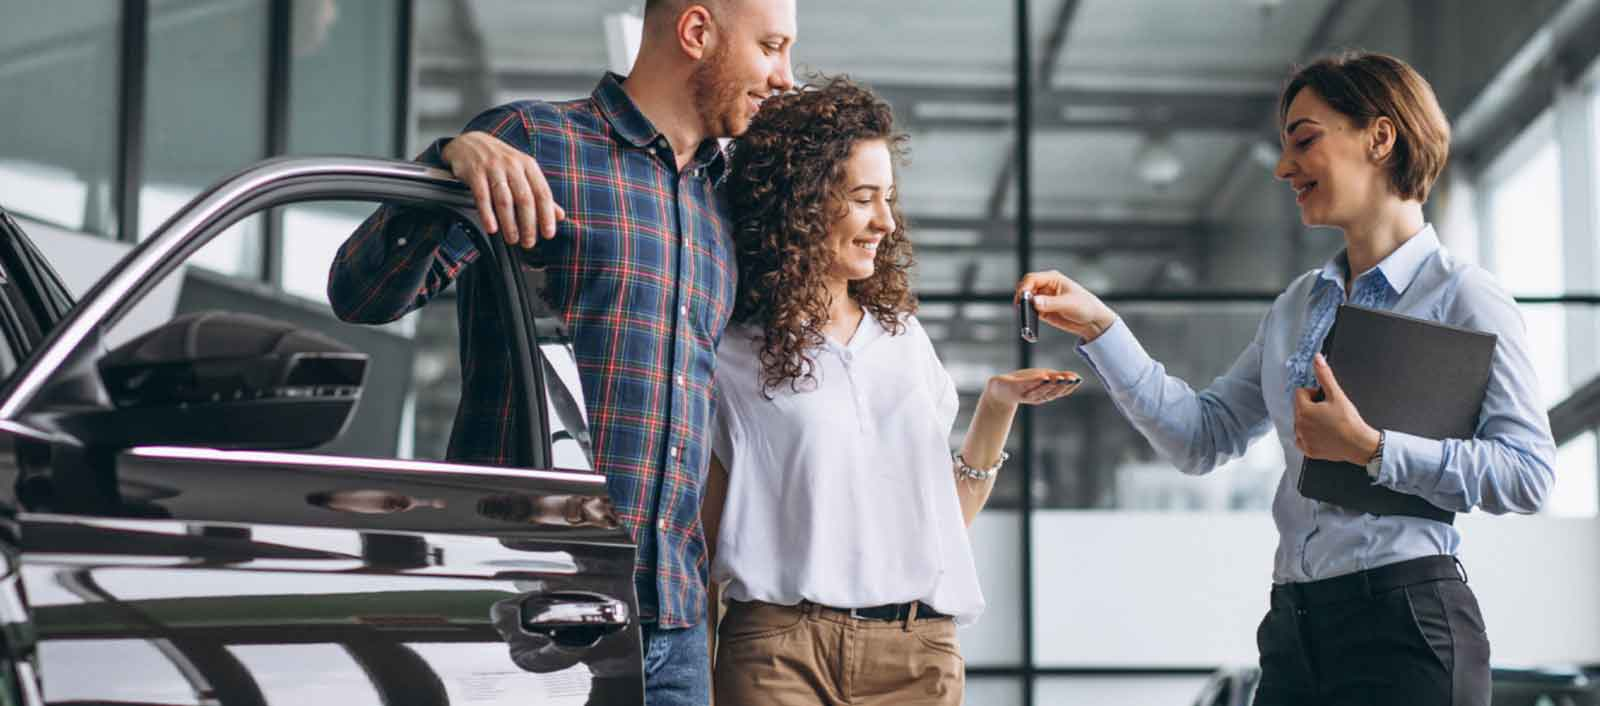 The Dos and Donts of Car Buying